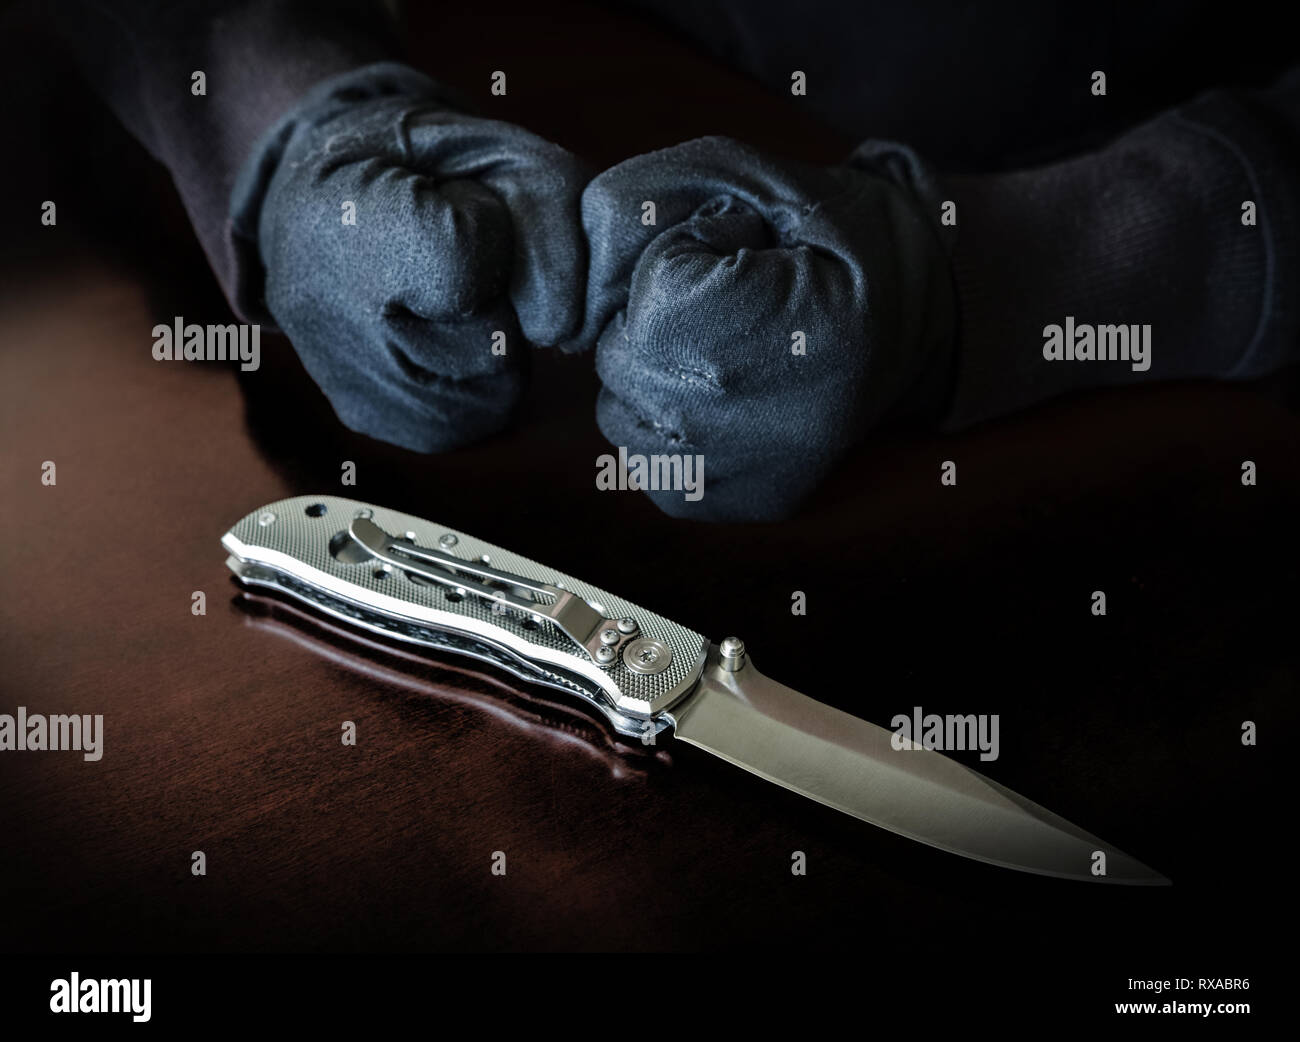 We see two fists clenched and gloved behind a folding knife with a pocket clip. Stock Photo